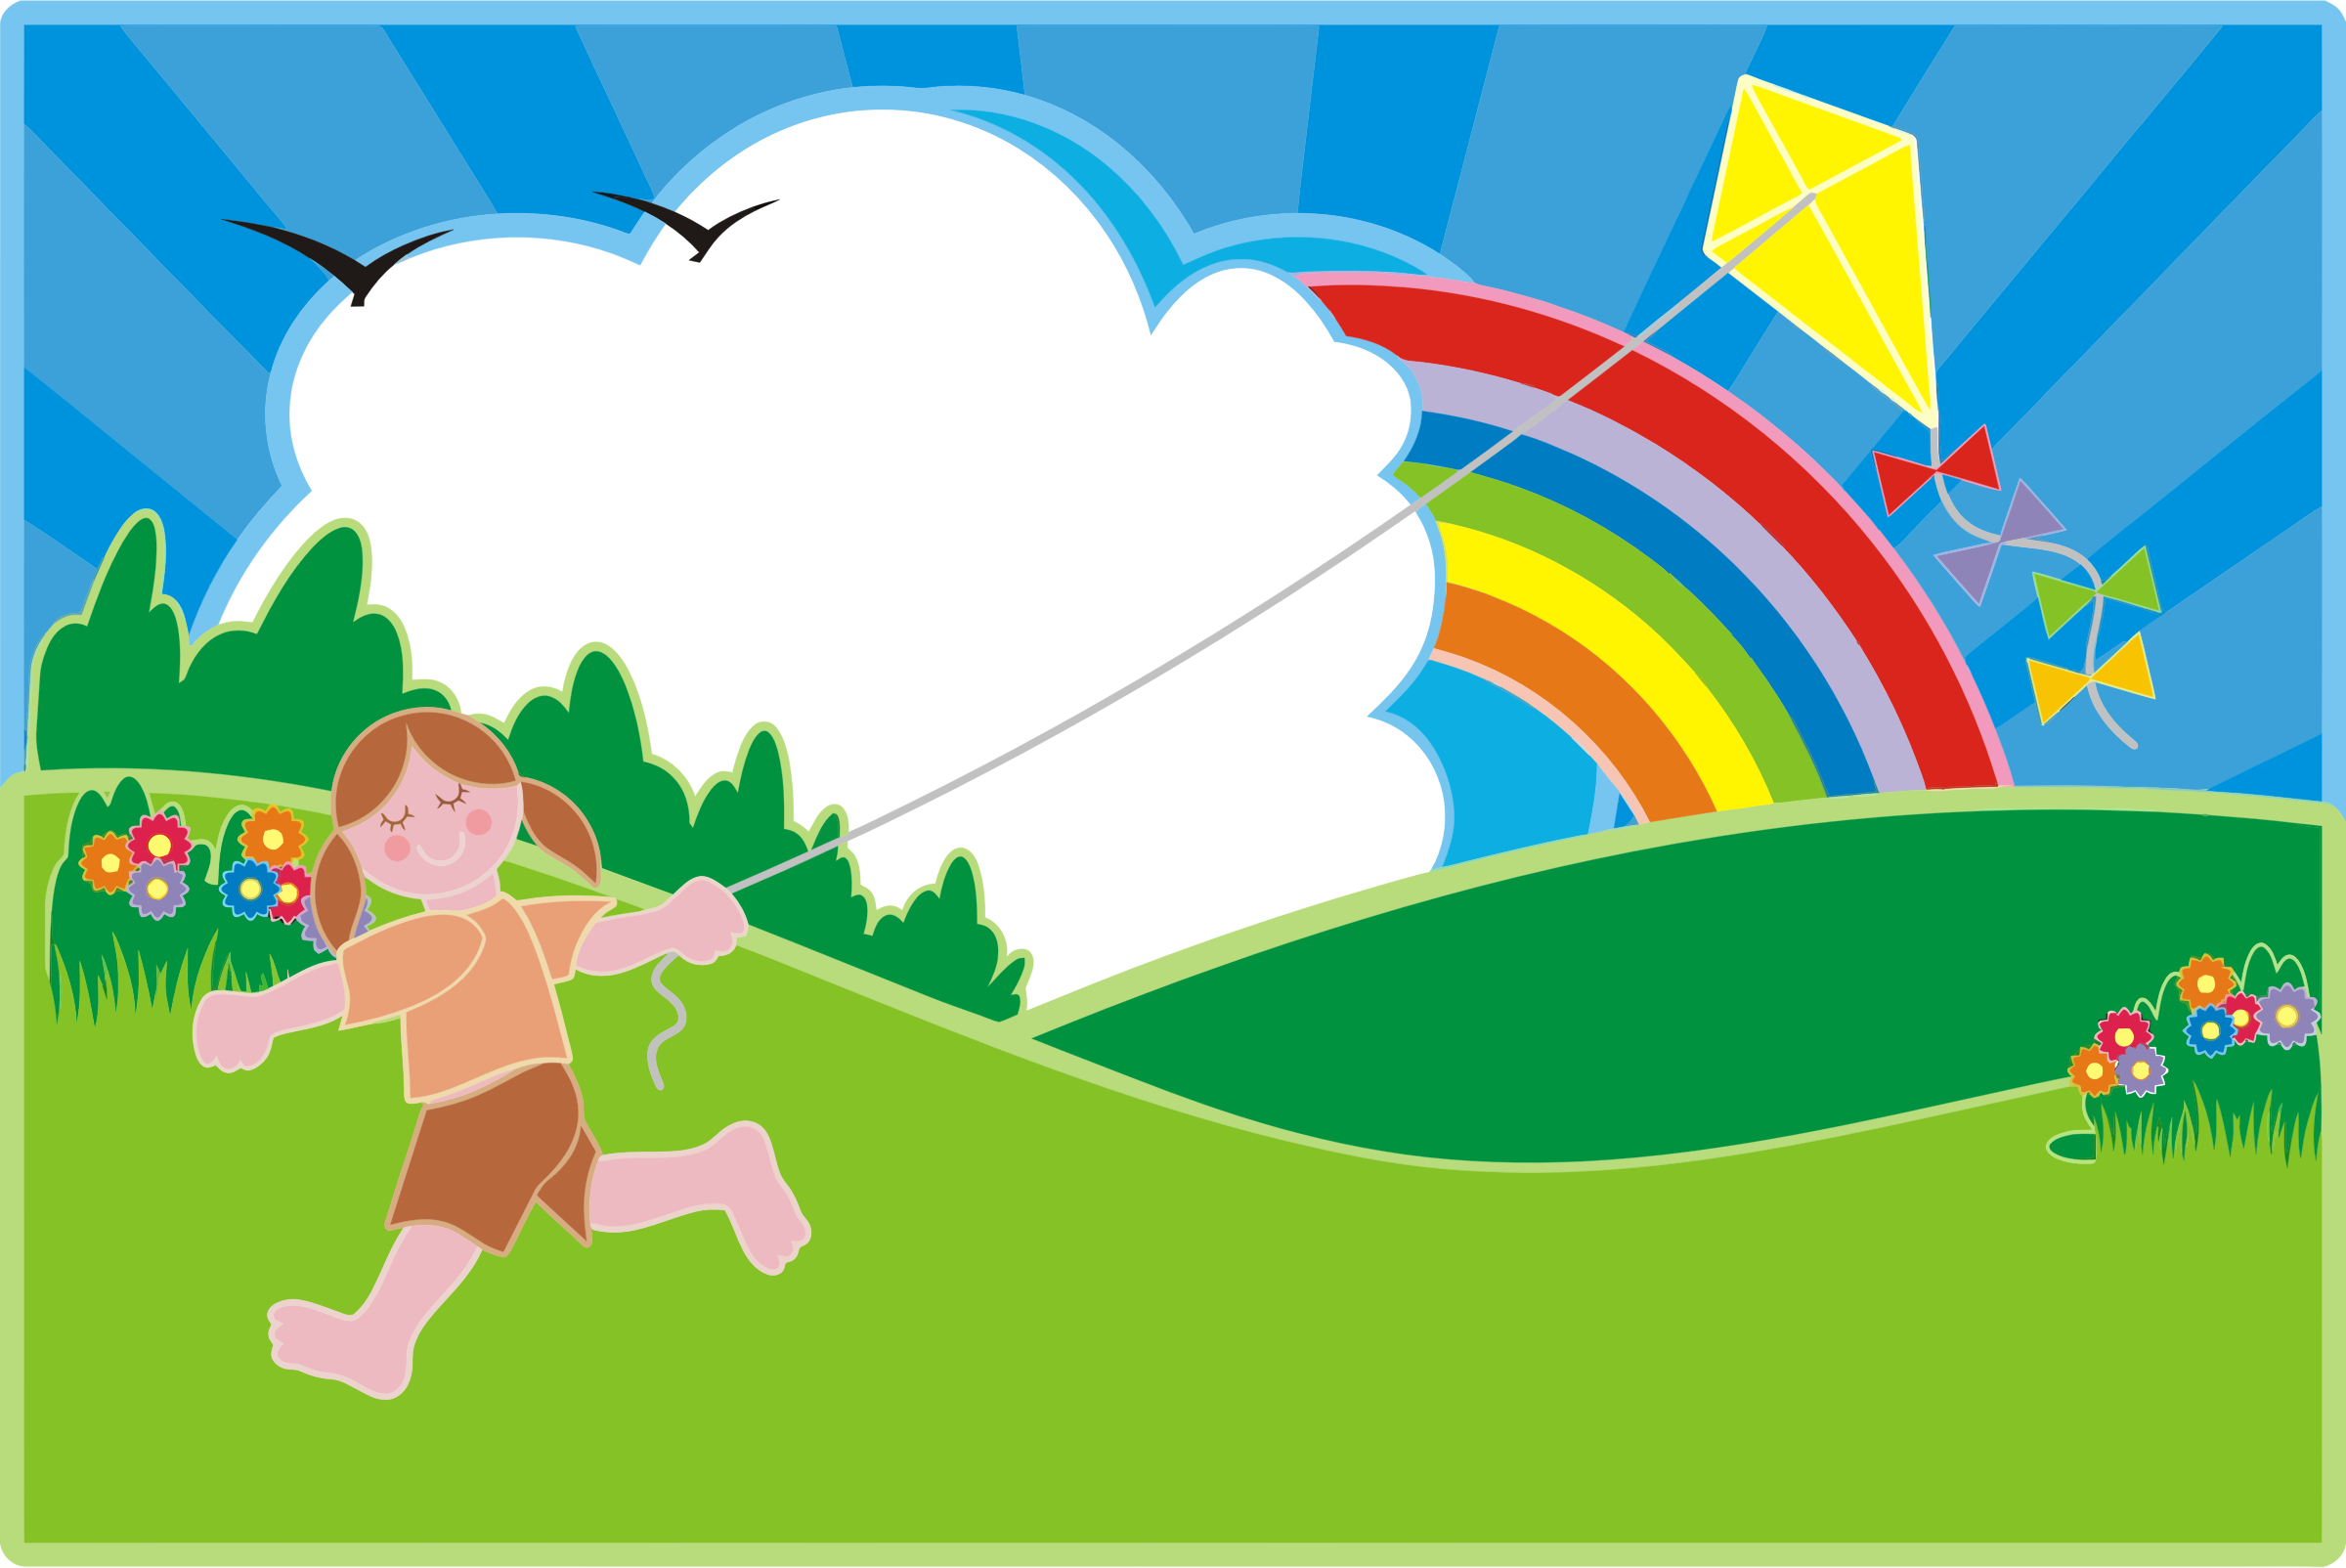 Kite PNG HD Images - 138917